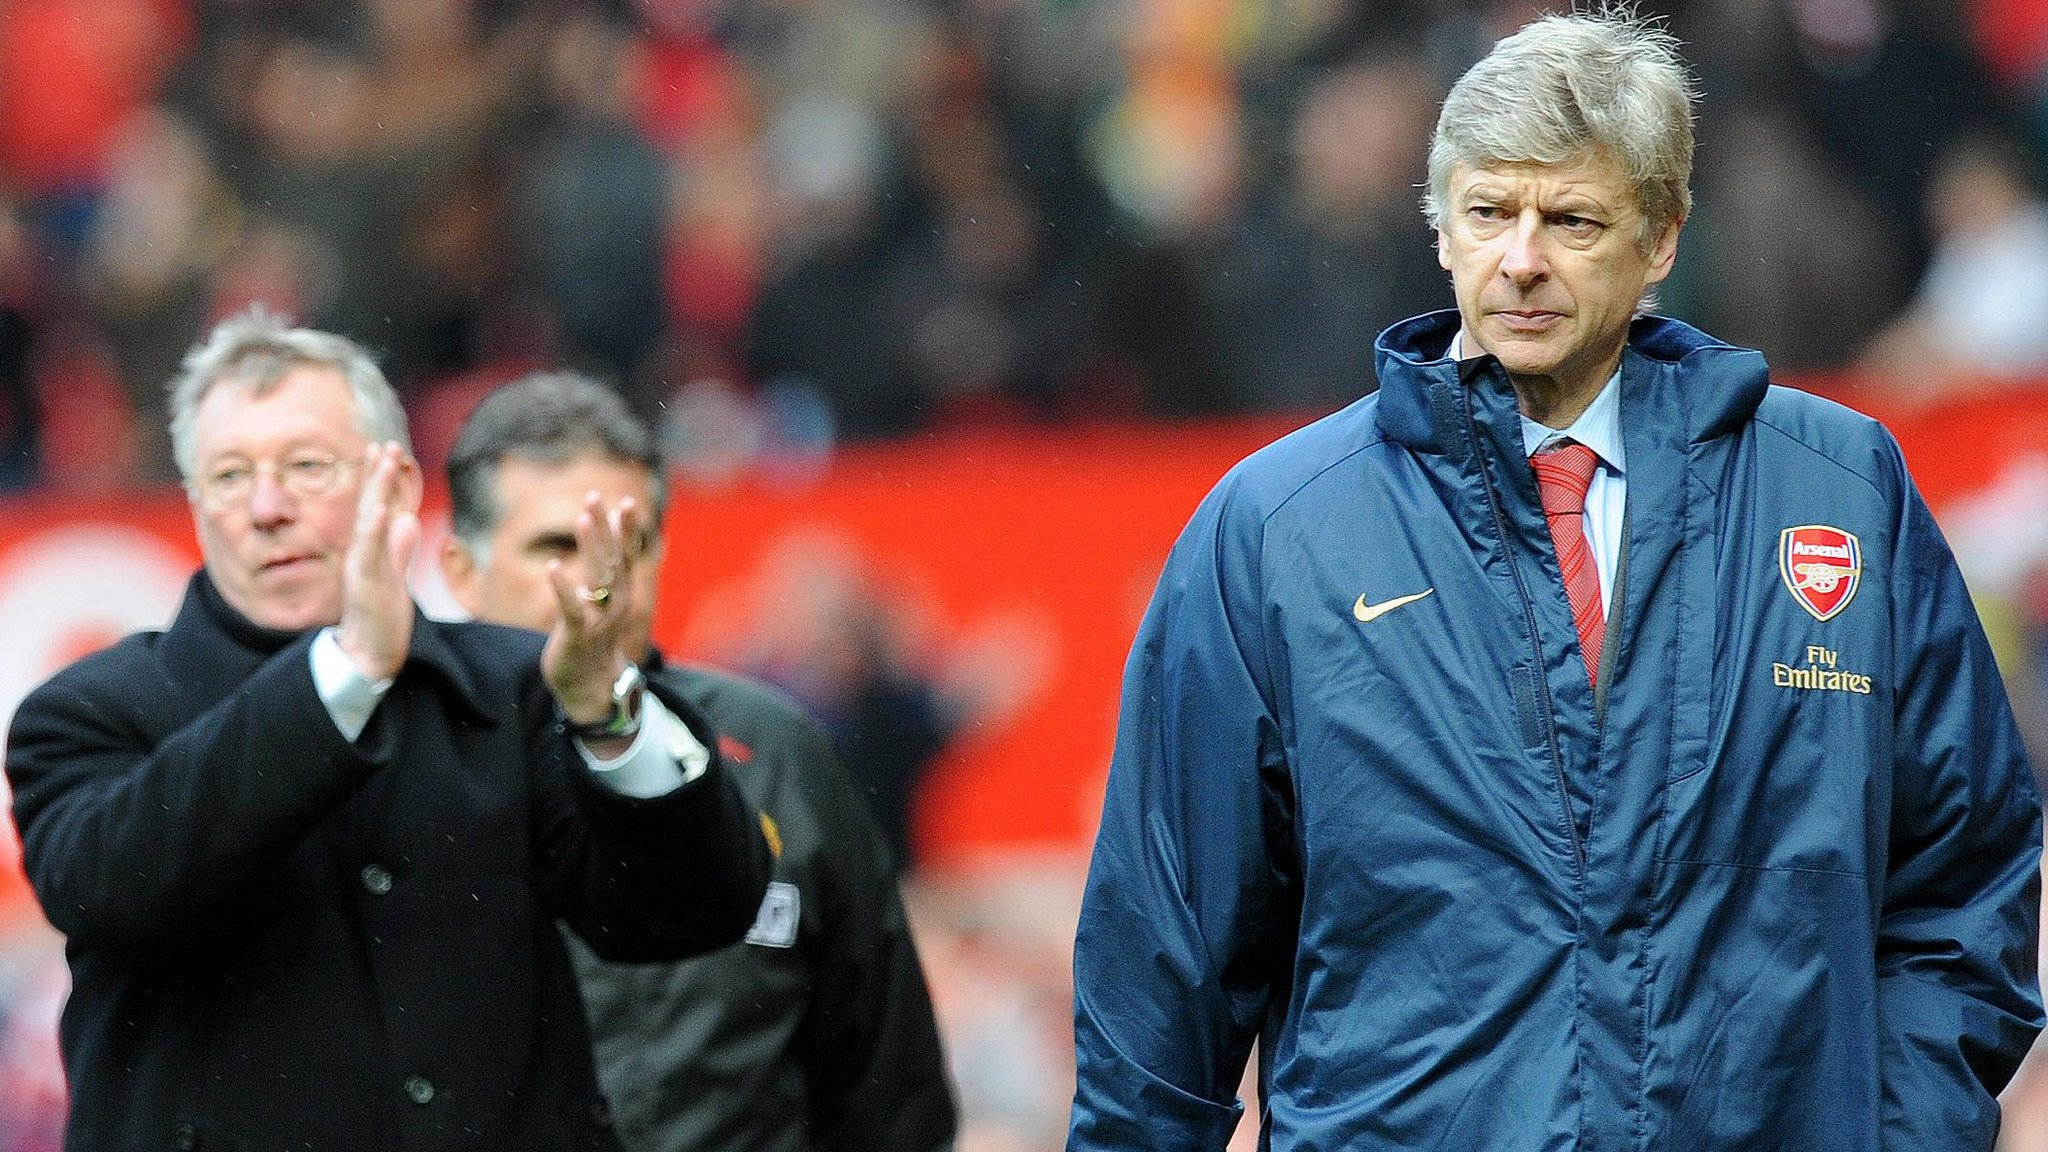 Ferguson leads praise for departing Wenger